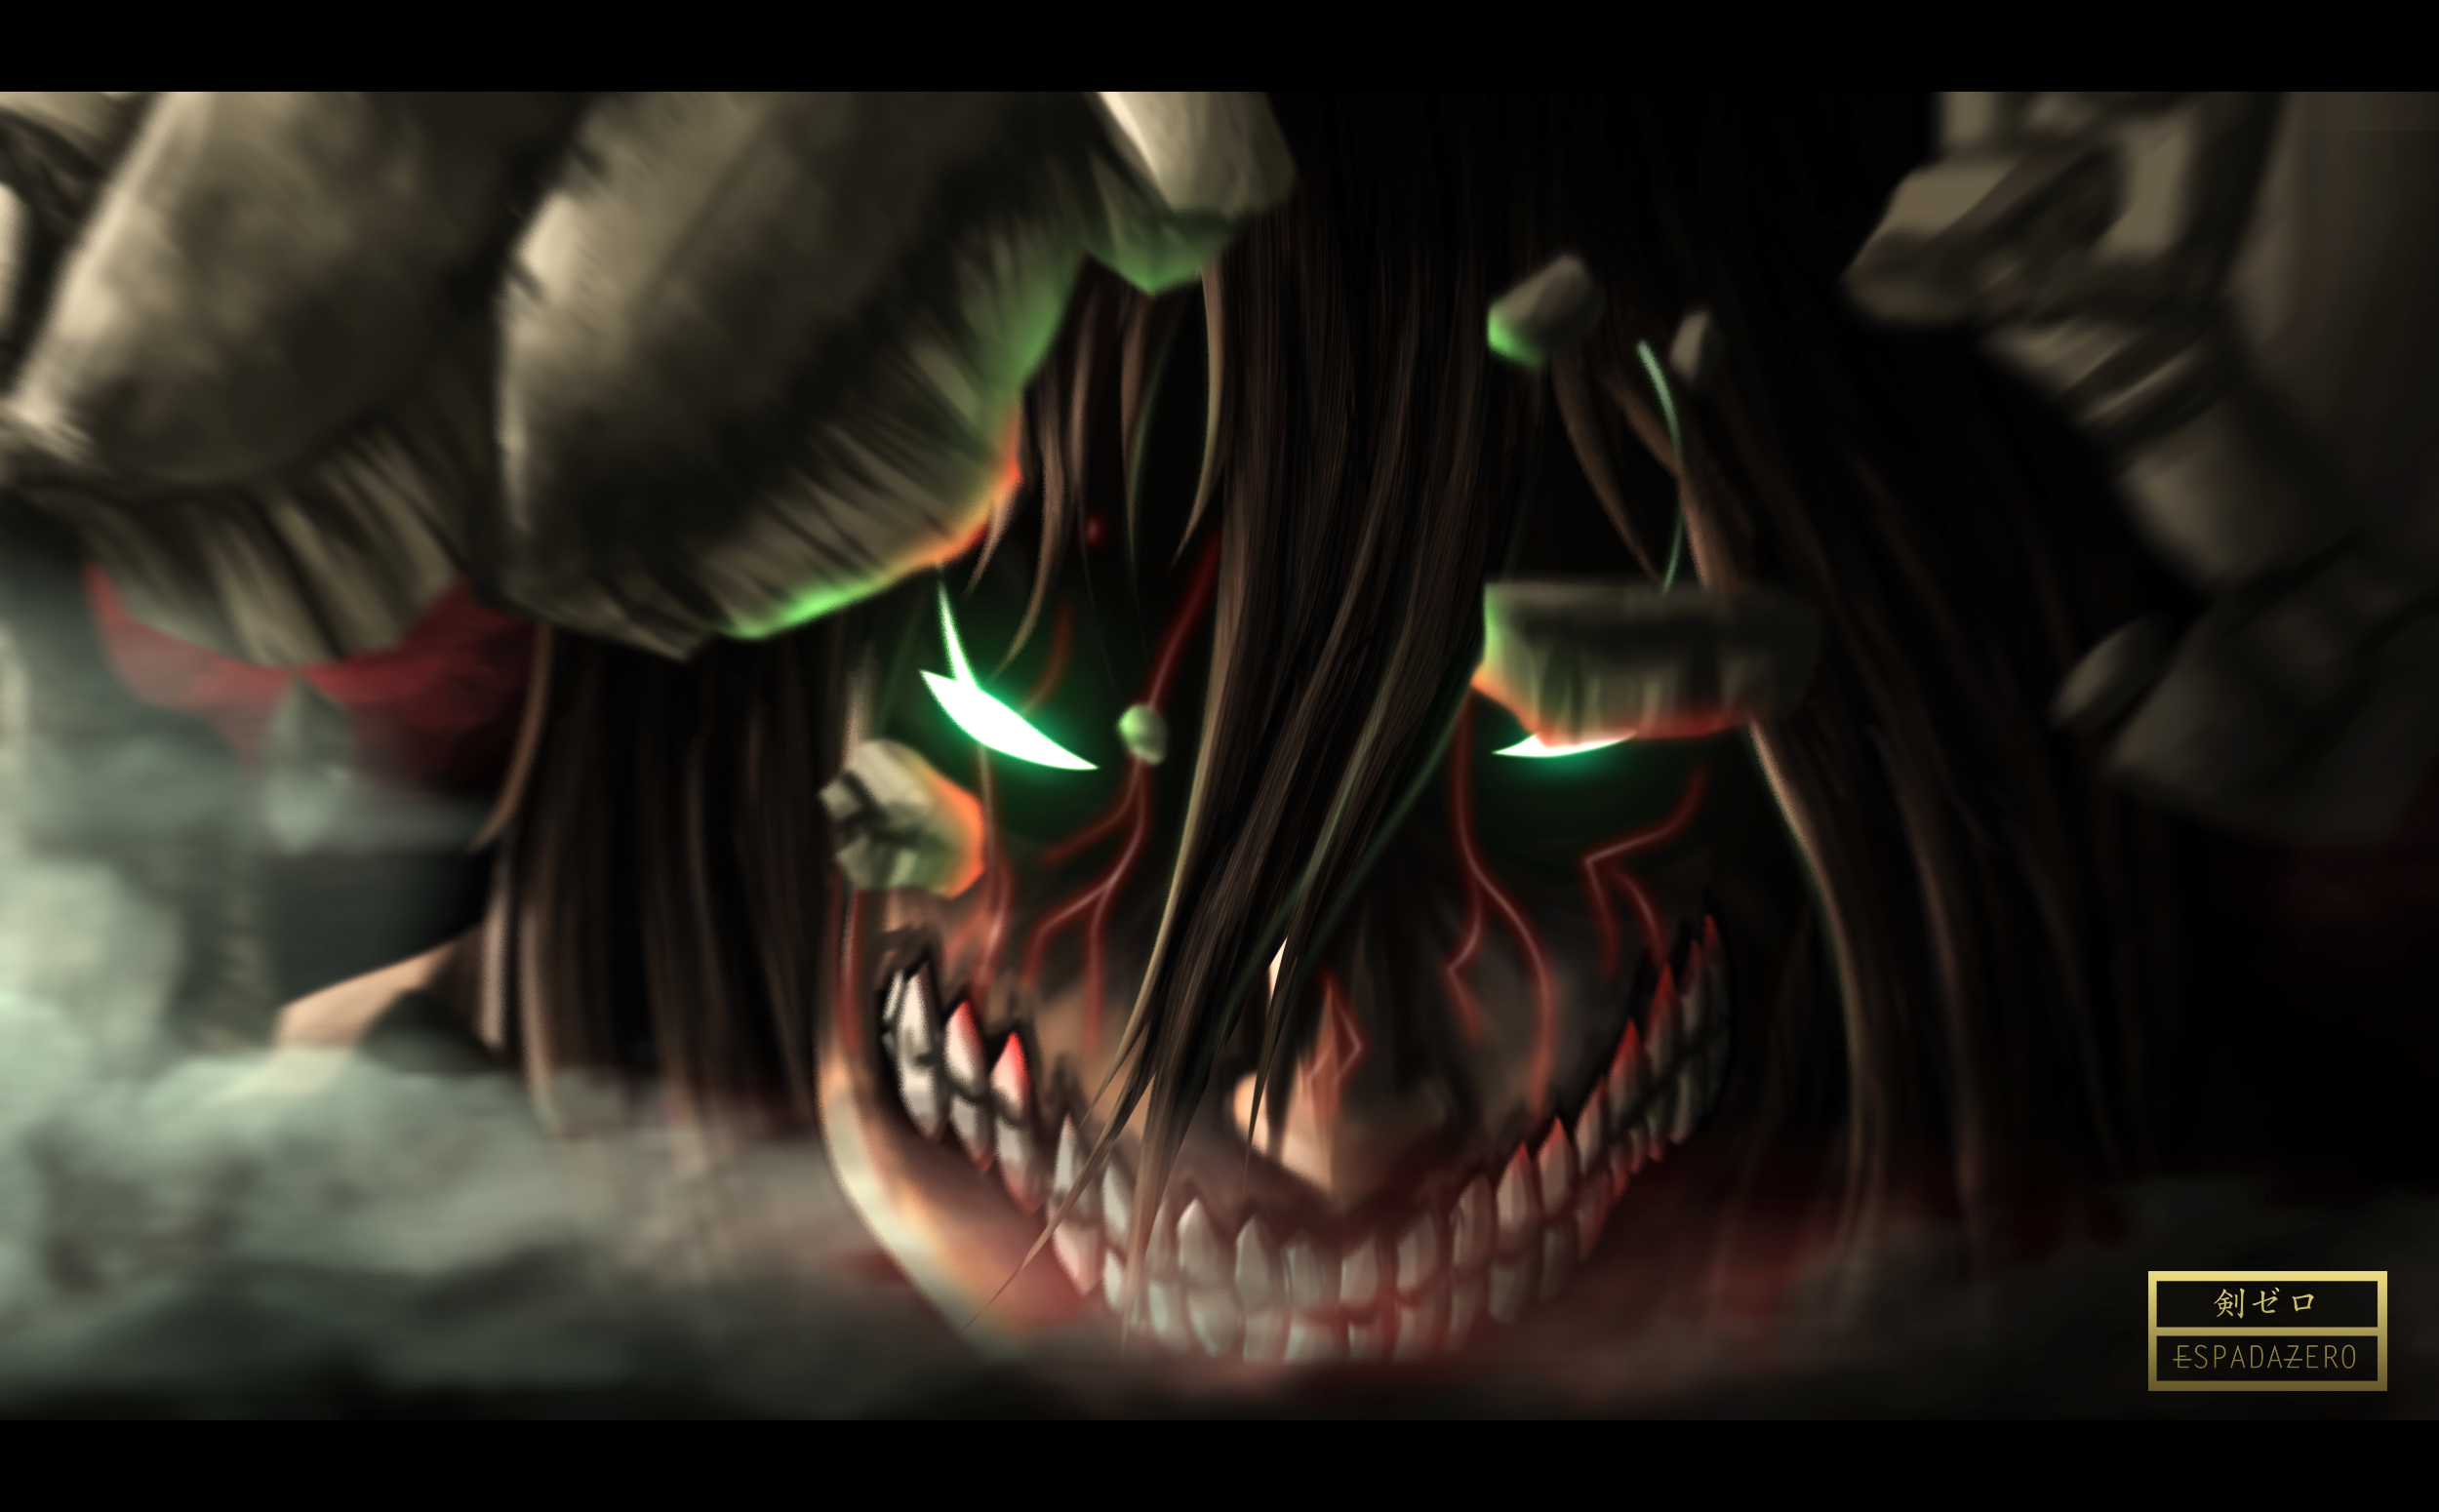 Download Wallpaper From Anime Attack On Titan With Tags Free Eren Yeager